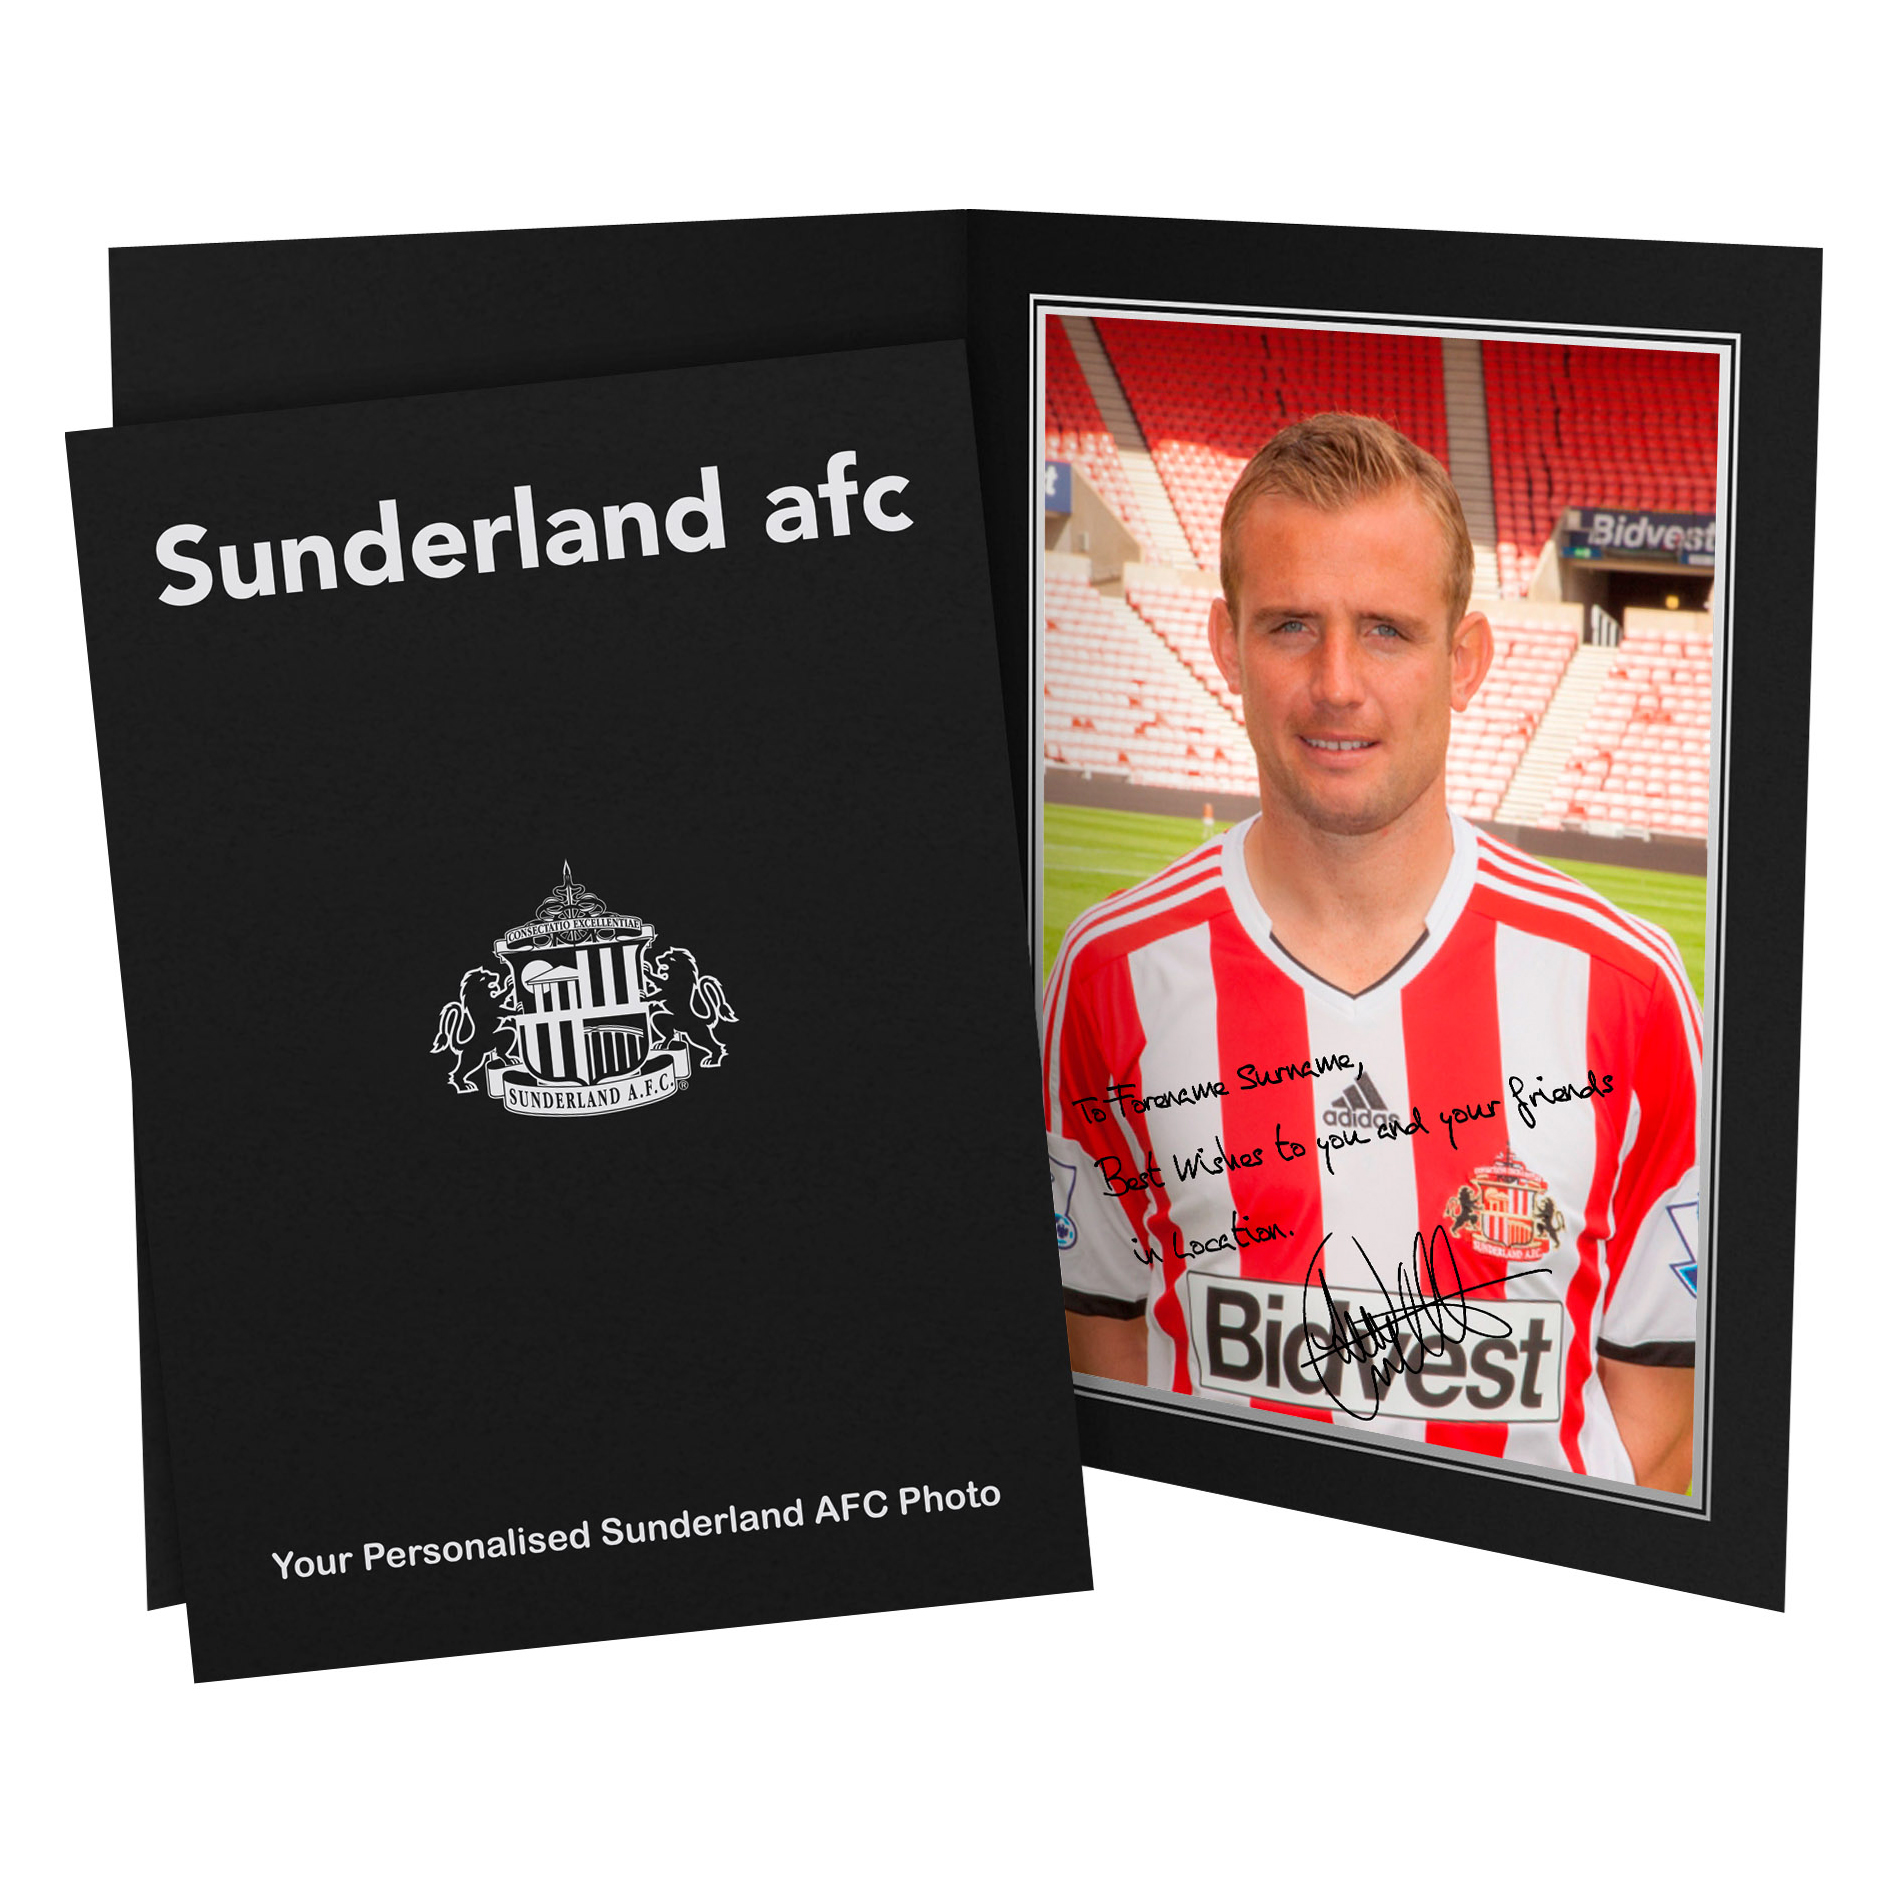 Sunderland Personalised Signature Photo in Presentation Folder - Cattermole